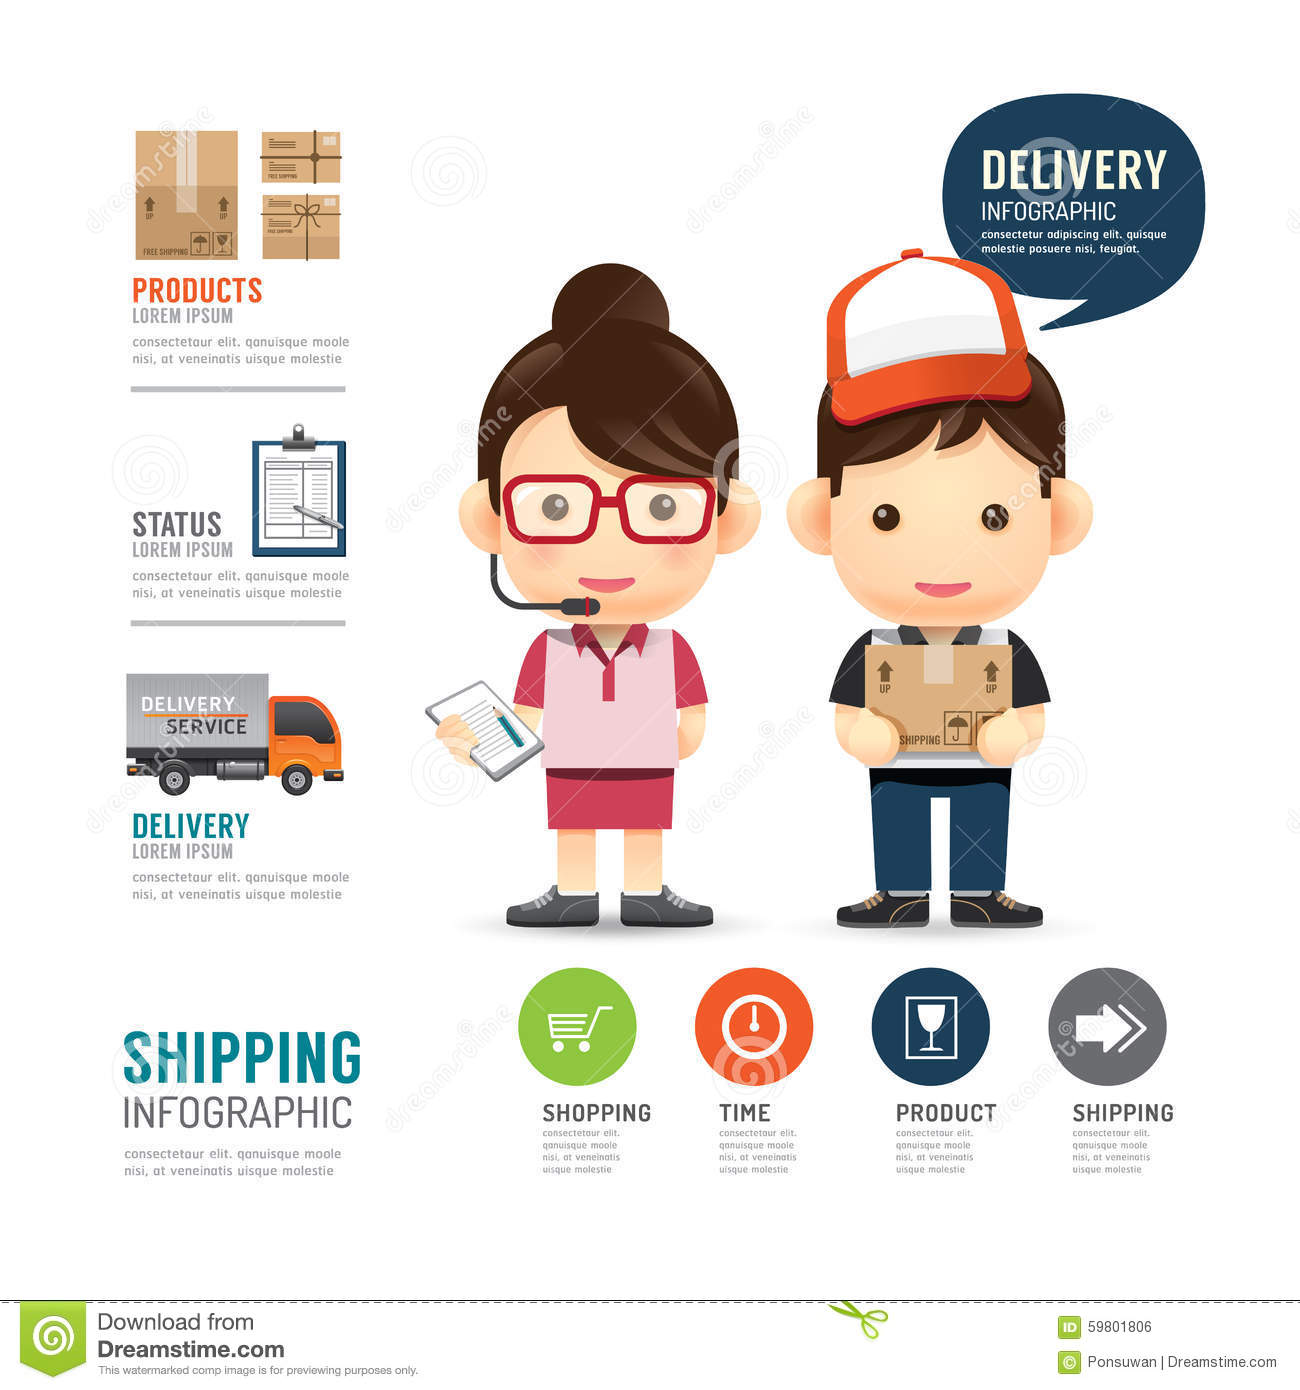 Shipping Infographic With People Delivery Service Design